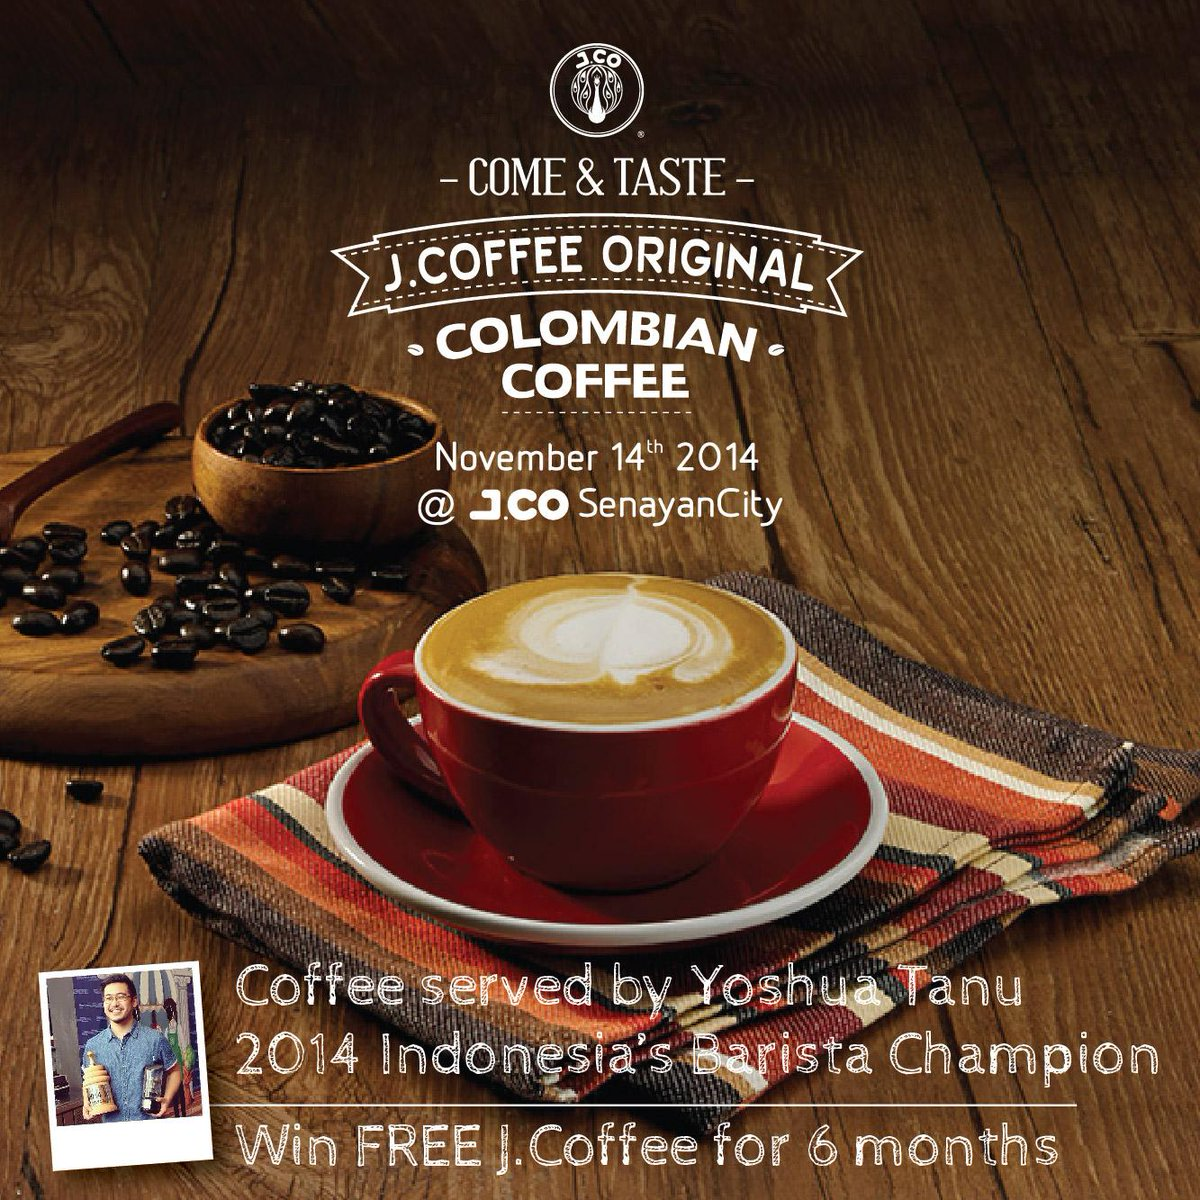 RETWEET this post and have a chance to win FREE http://t.co/44hBNcXTsM  for 6 months! #JCoffee http://t.co/PbsrnDPZW9